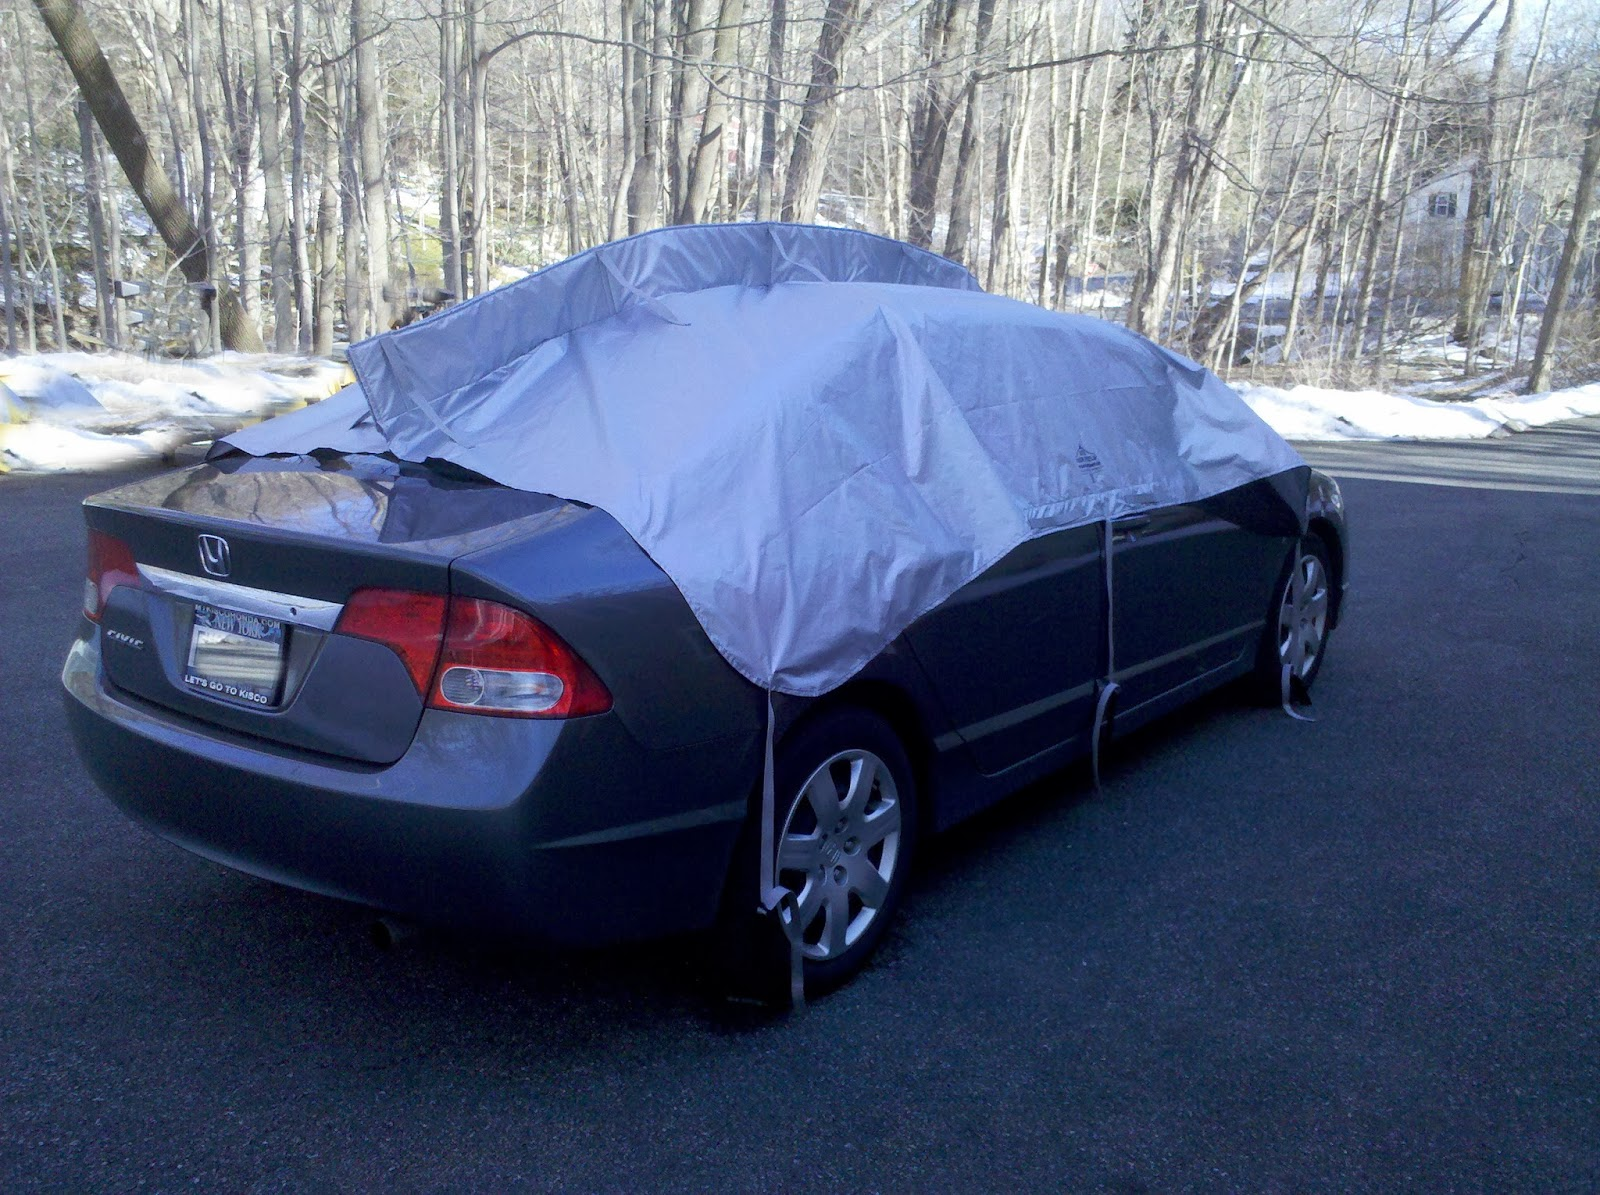 Warming Up Car With Car Cover On